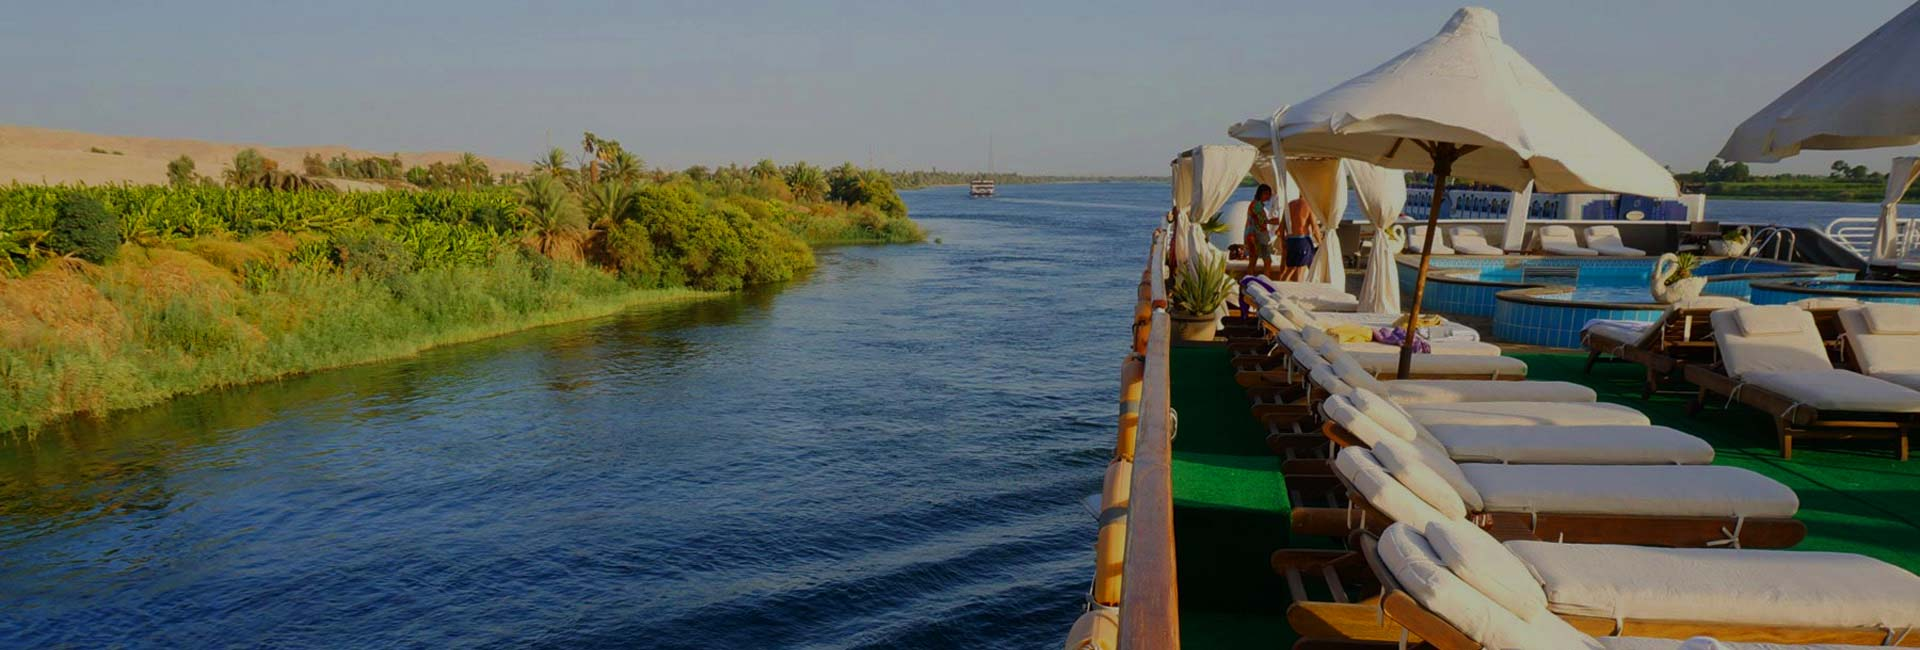 Nile Cruise From Hurghada 4 Days 3 Nights